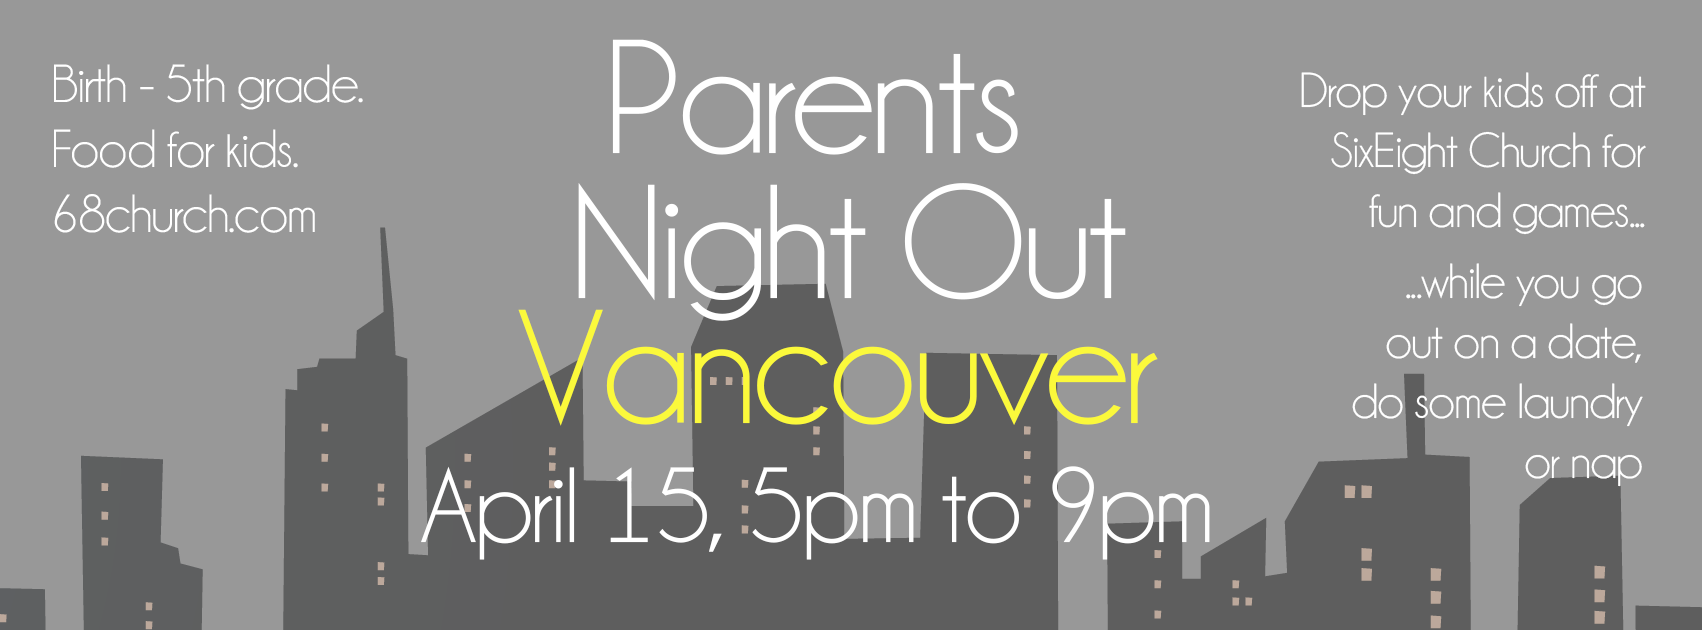 Parents Night Out, April 15, 2016